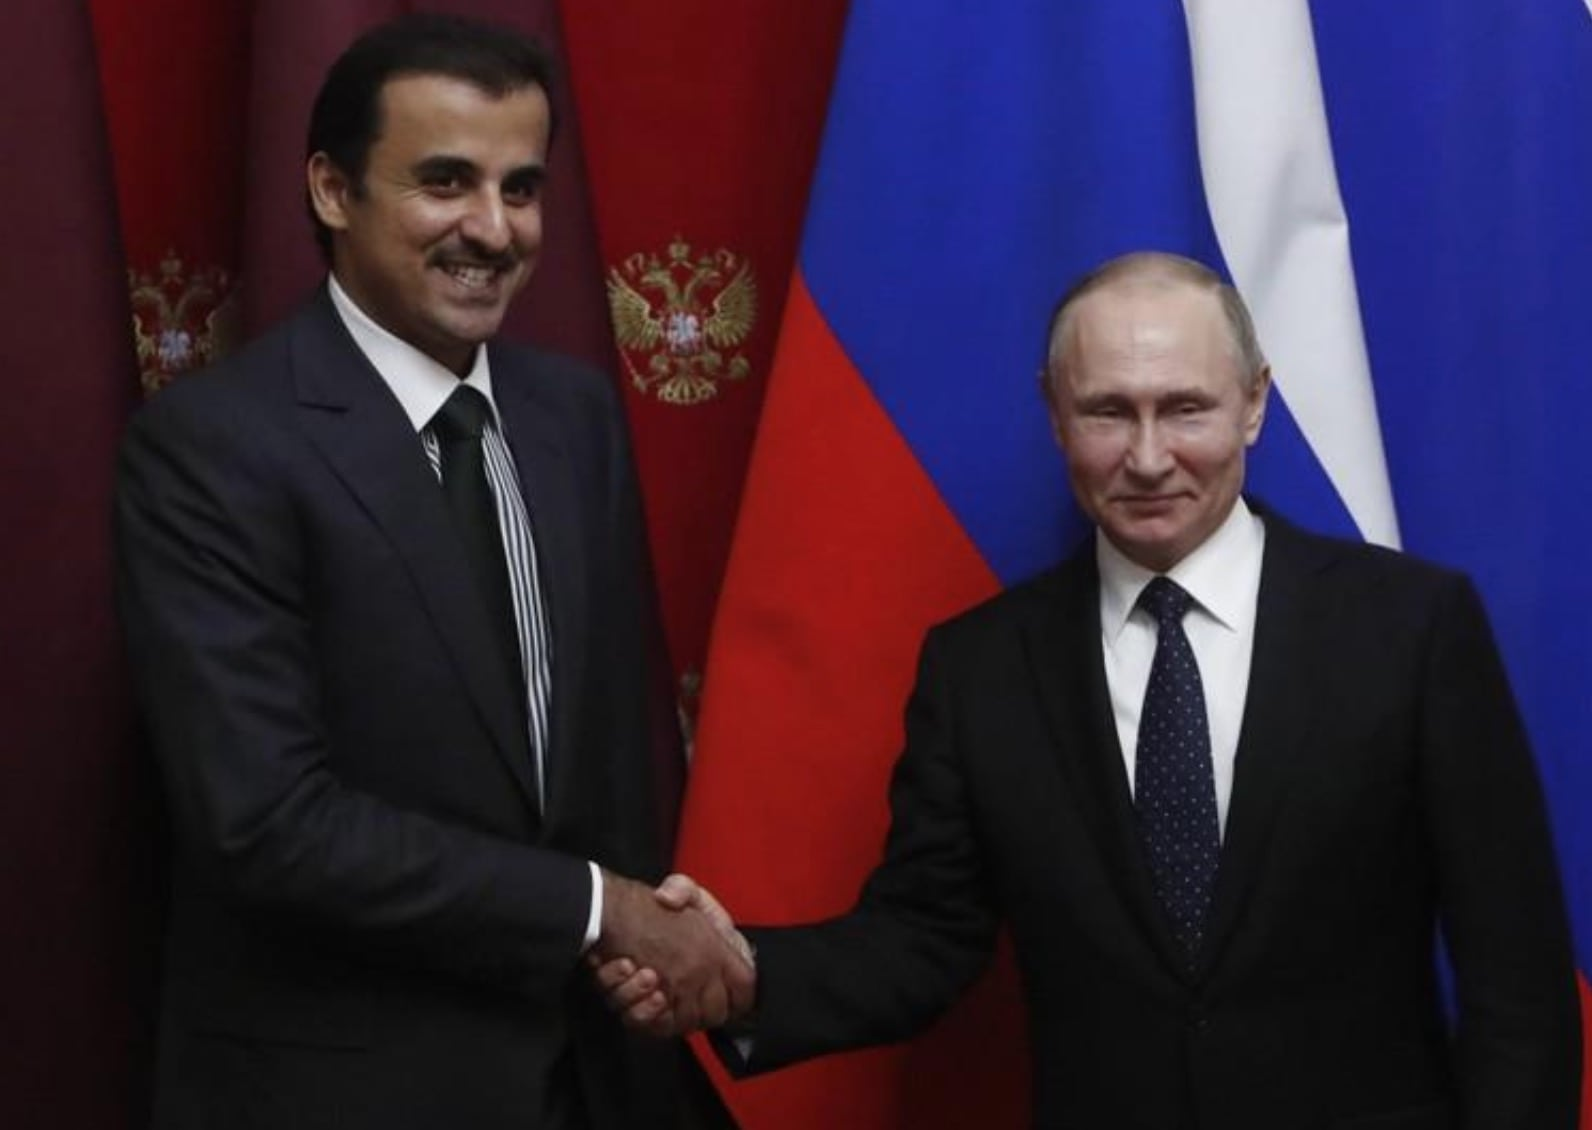 Image Russian President Vladimir Putin and Qatar's Emir Sheikh Tamim bin Hamad al-Thani shake hands during a signing ceremony following a meeting at the Kremlin in Moscow, Russia March 26, 2018. [REUTERS / Sergei Karpukhin]